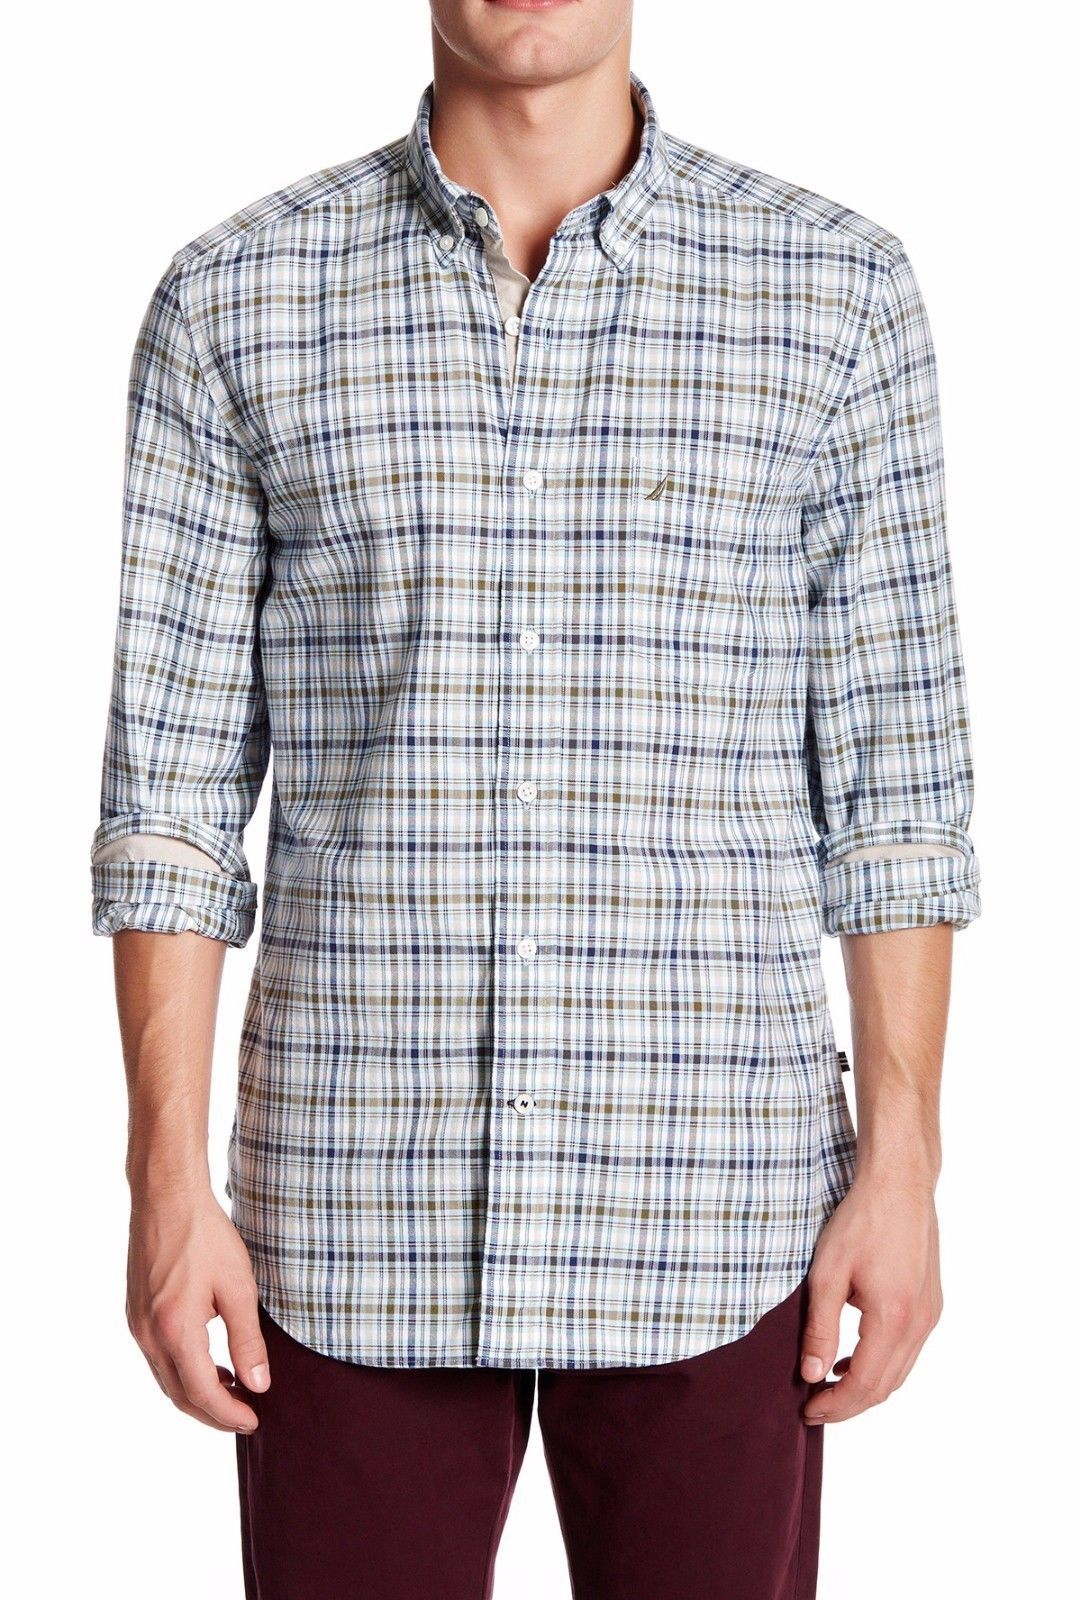 NEW MENS NAUTICA LONG SLEEVE PLAID COTTON BUTTON FRONT SHIRT $69